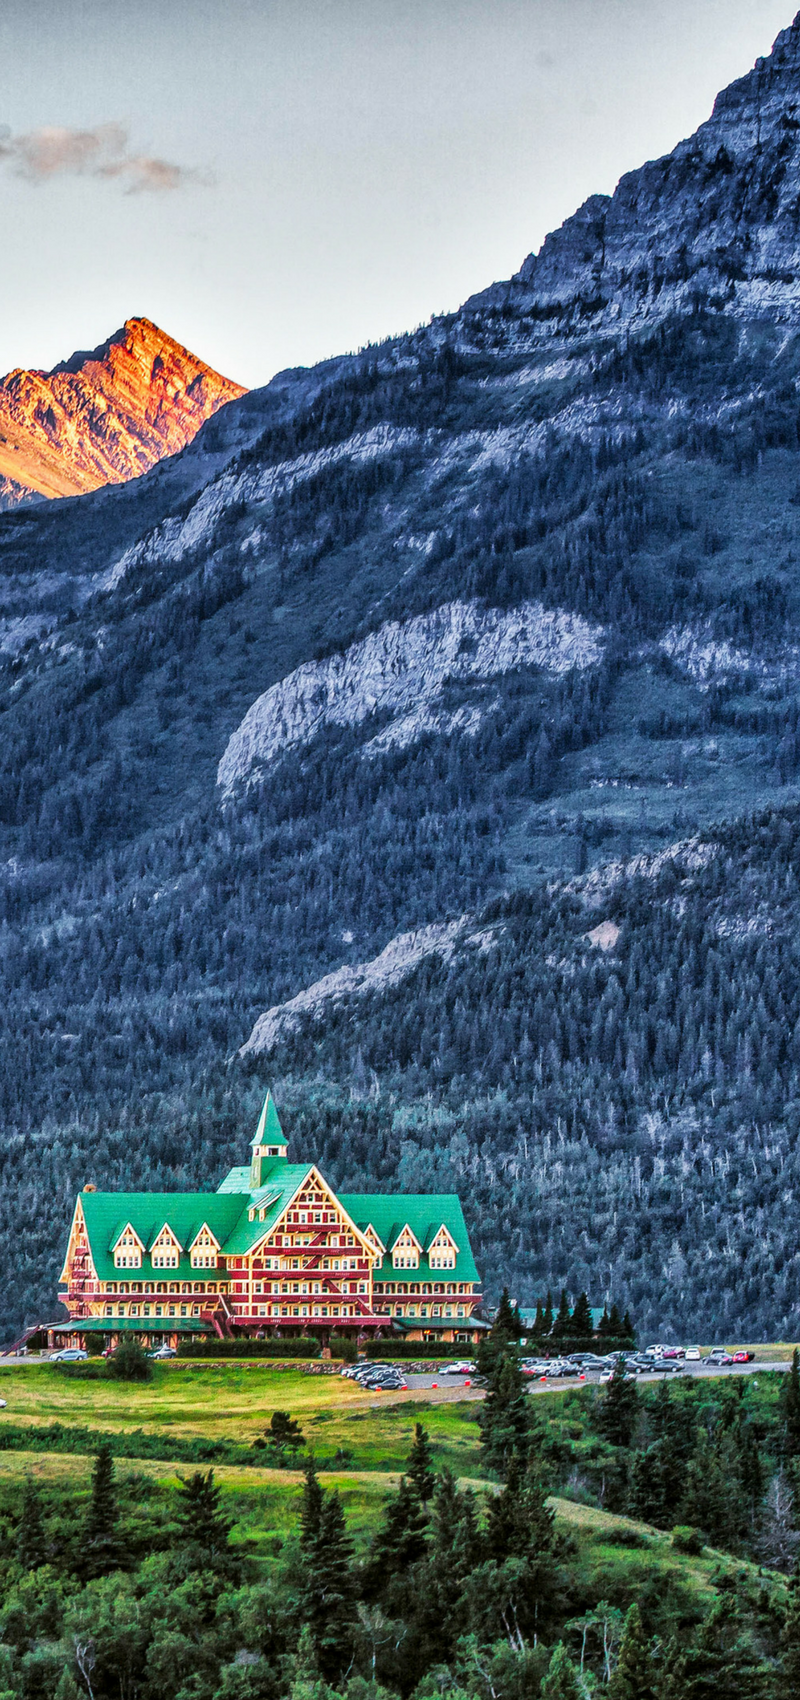 10 amazing places to visit in alberta, canada | avenly lane travel